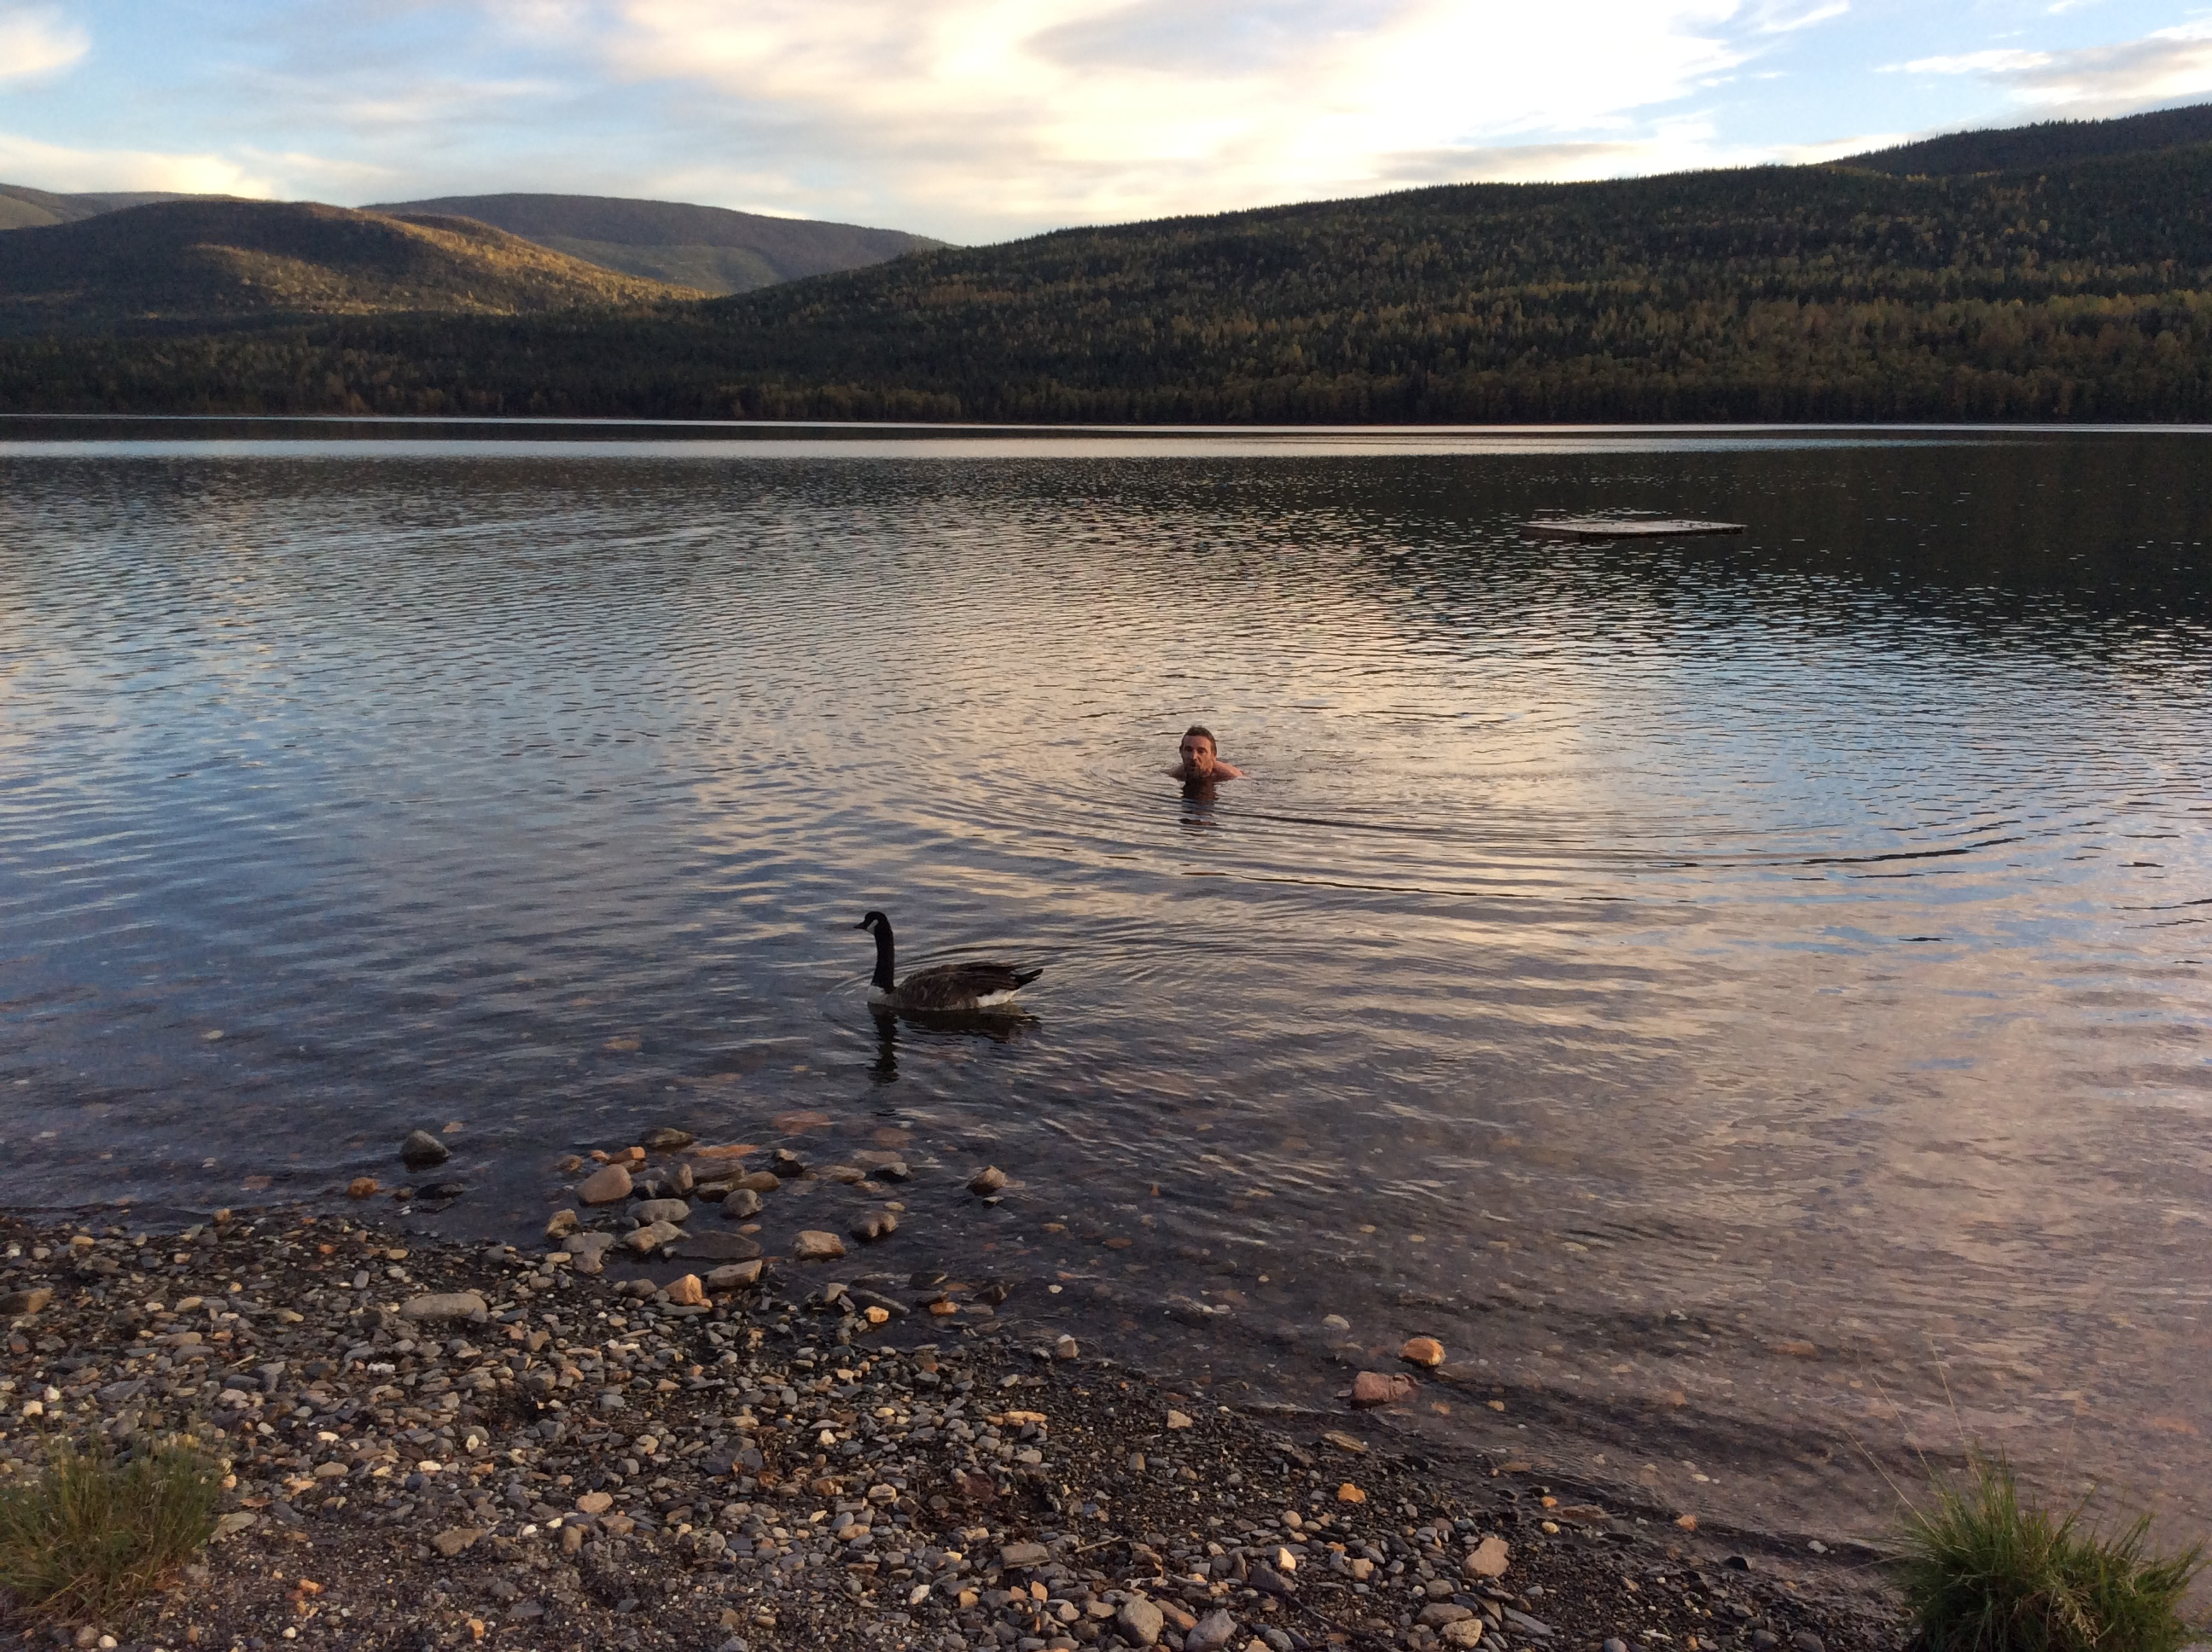 Al swims with goose